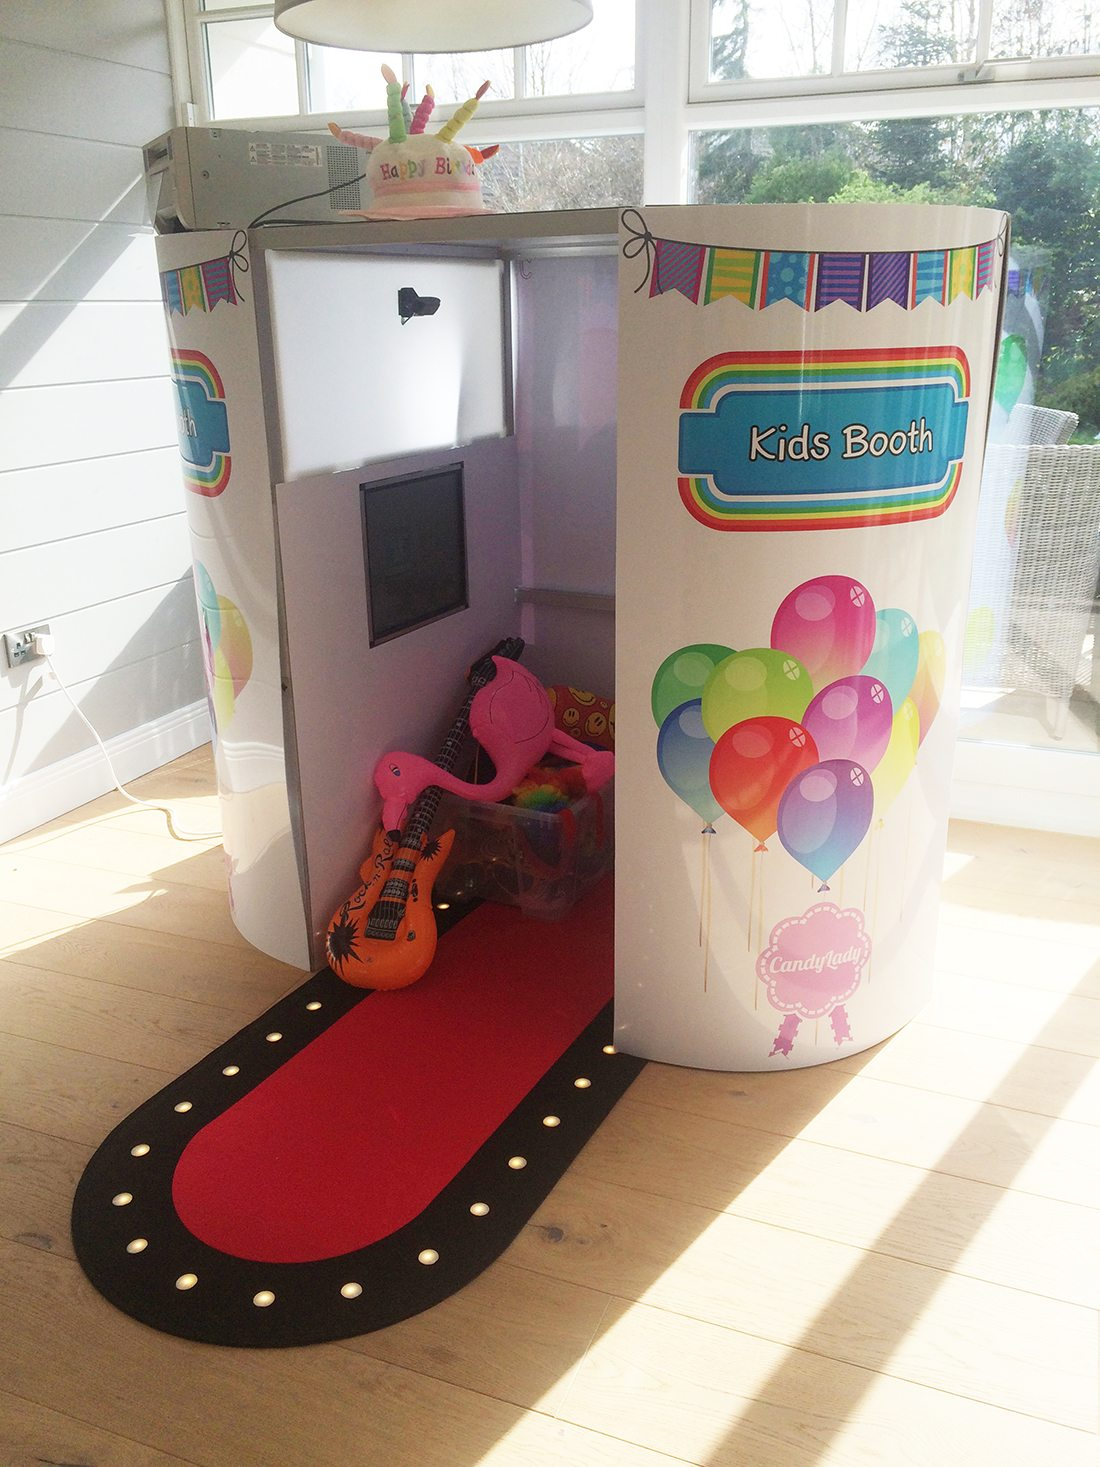 Kiddies Photo Booth Hire - Candy Lady